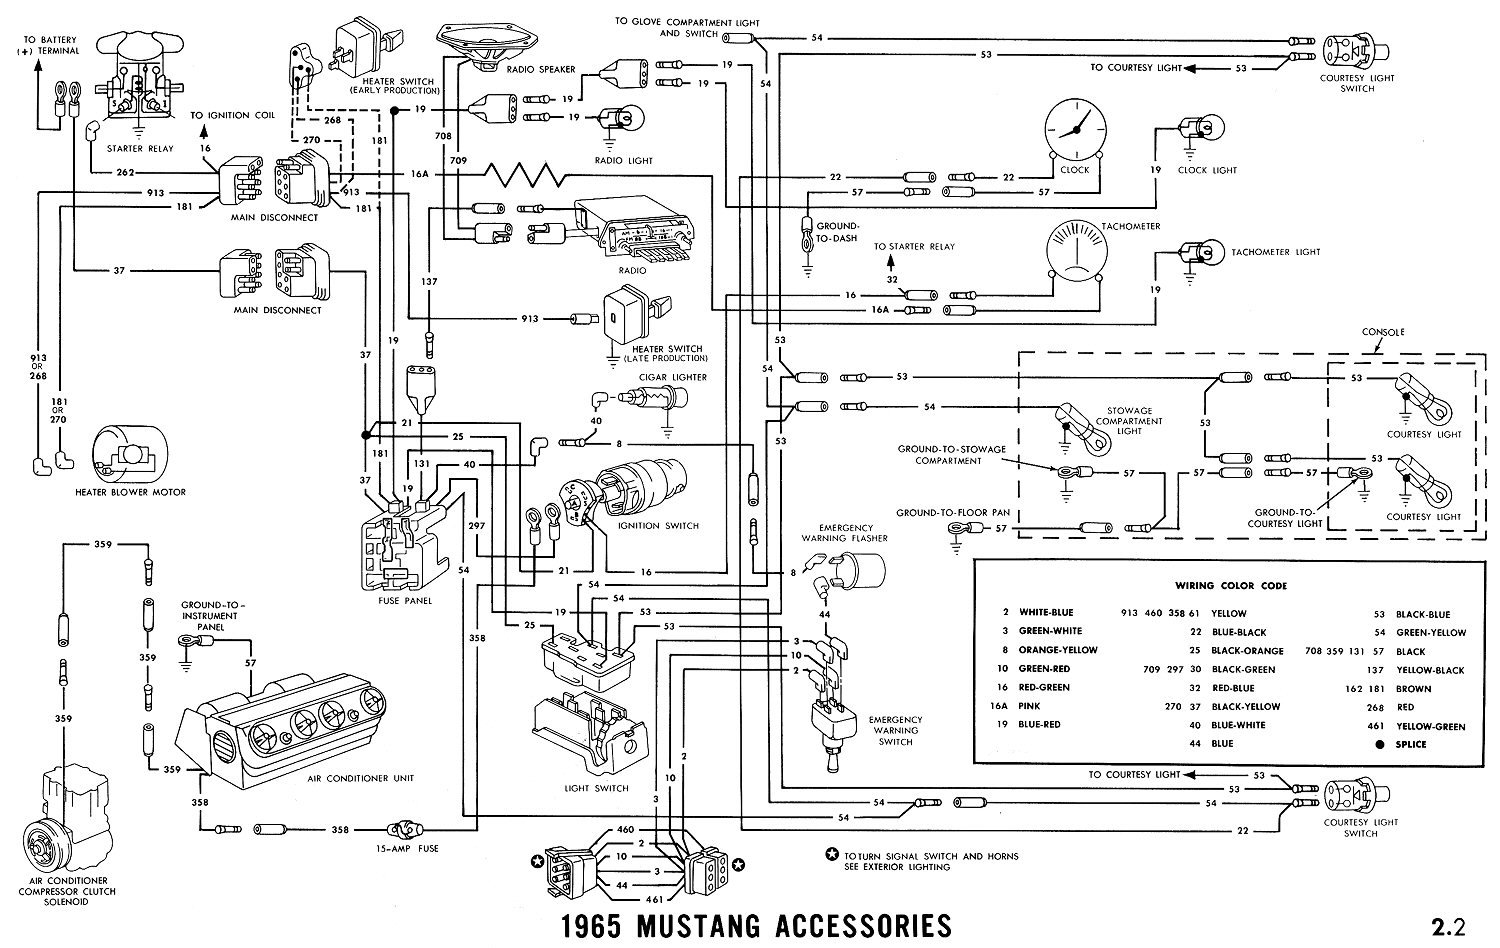 1997 f150 radio wiring diagram alpine harness fuse block on a 1965 mustang coupe - ford forum